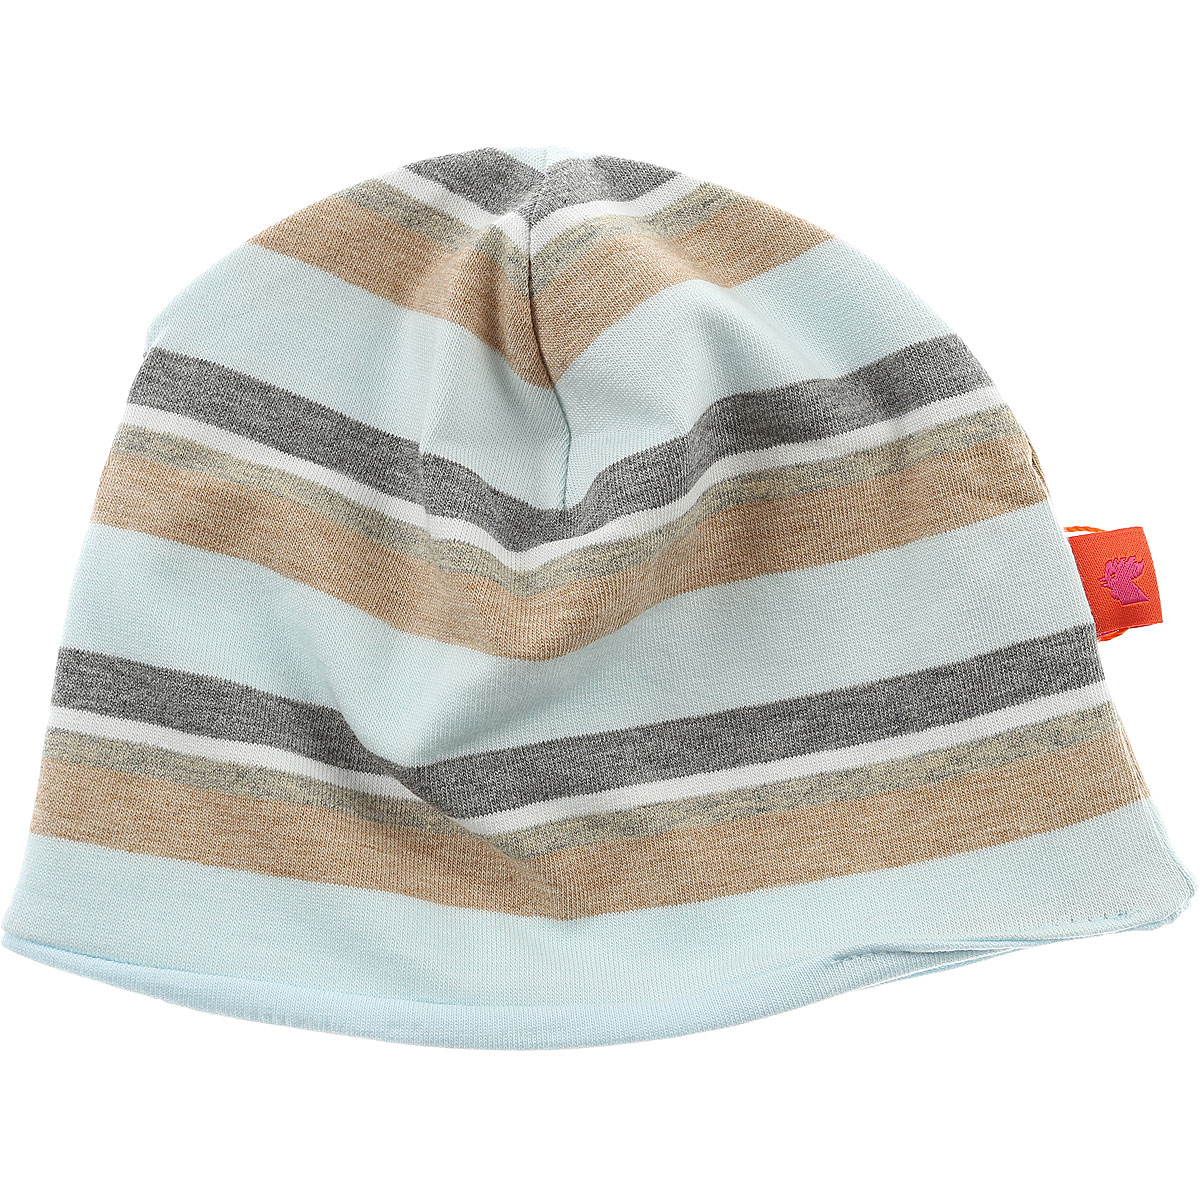 Gallo Baby Hats for Boys On Sale in Outlet, Sky Blue, Cotton, 2019, 11m 6m